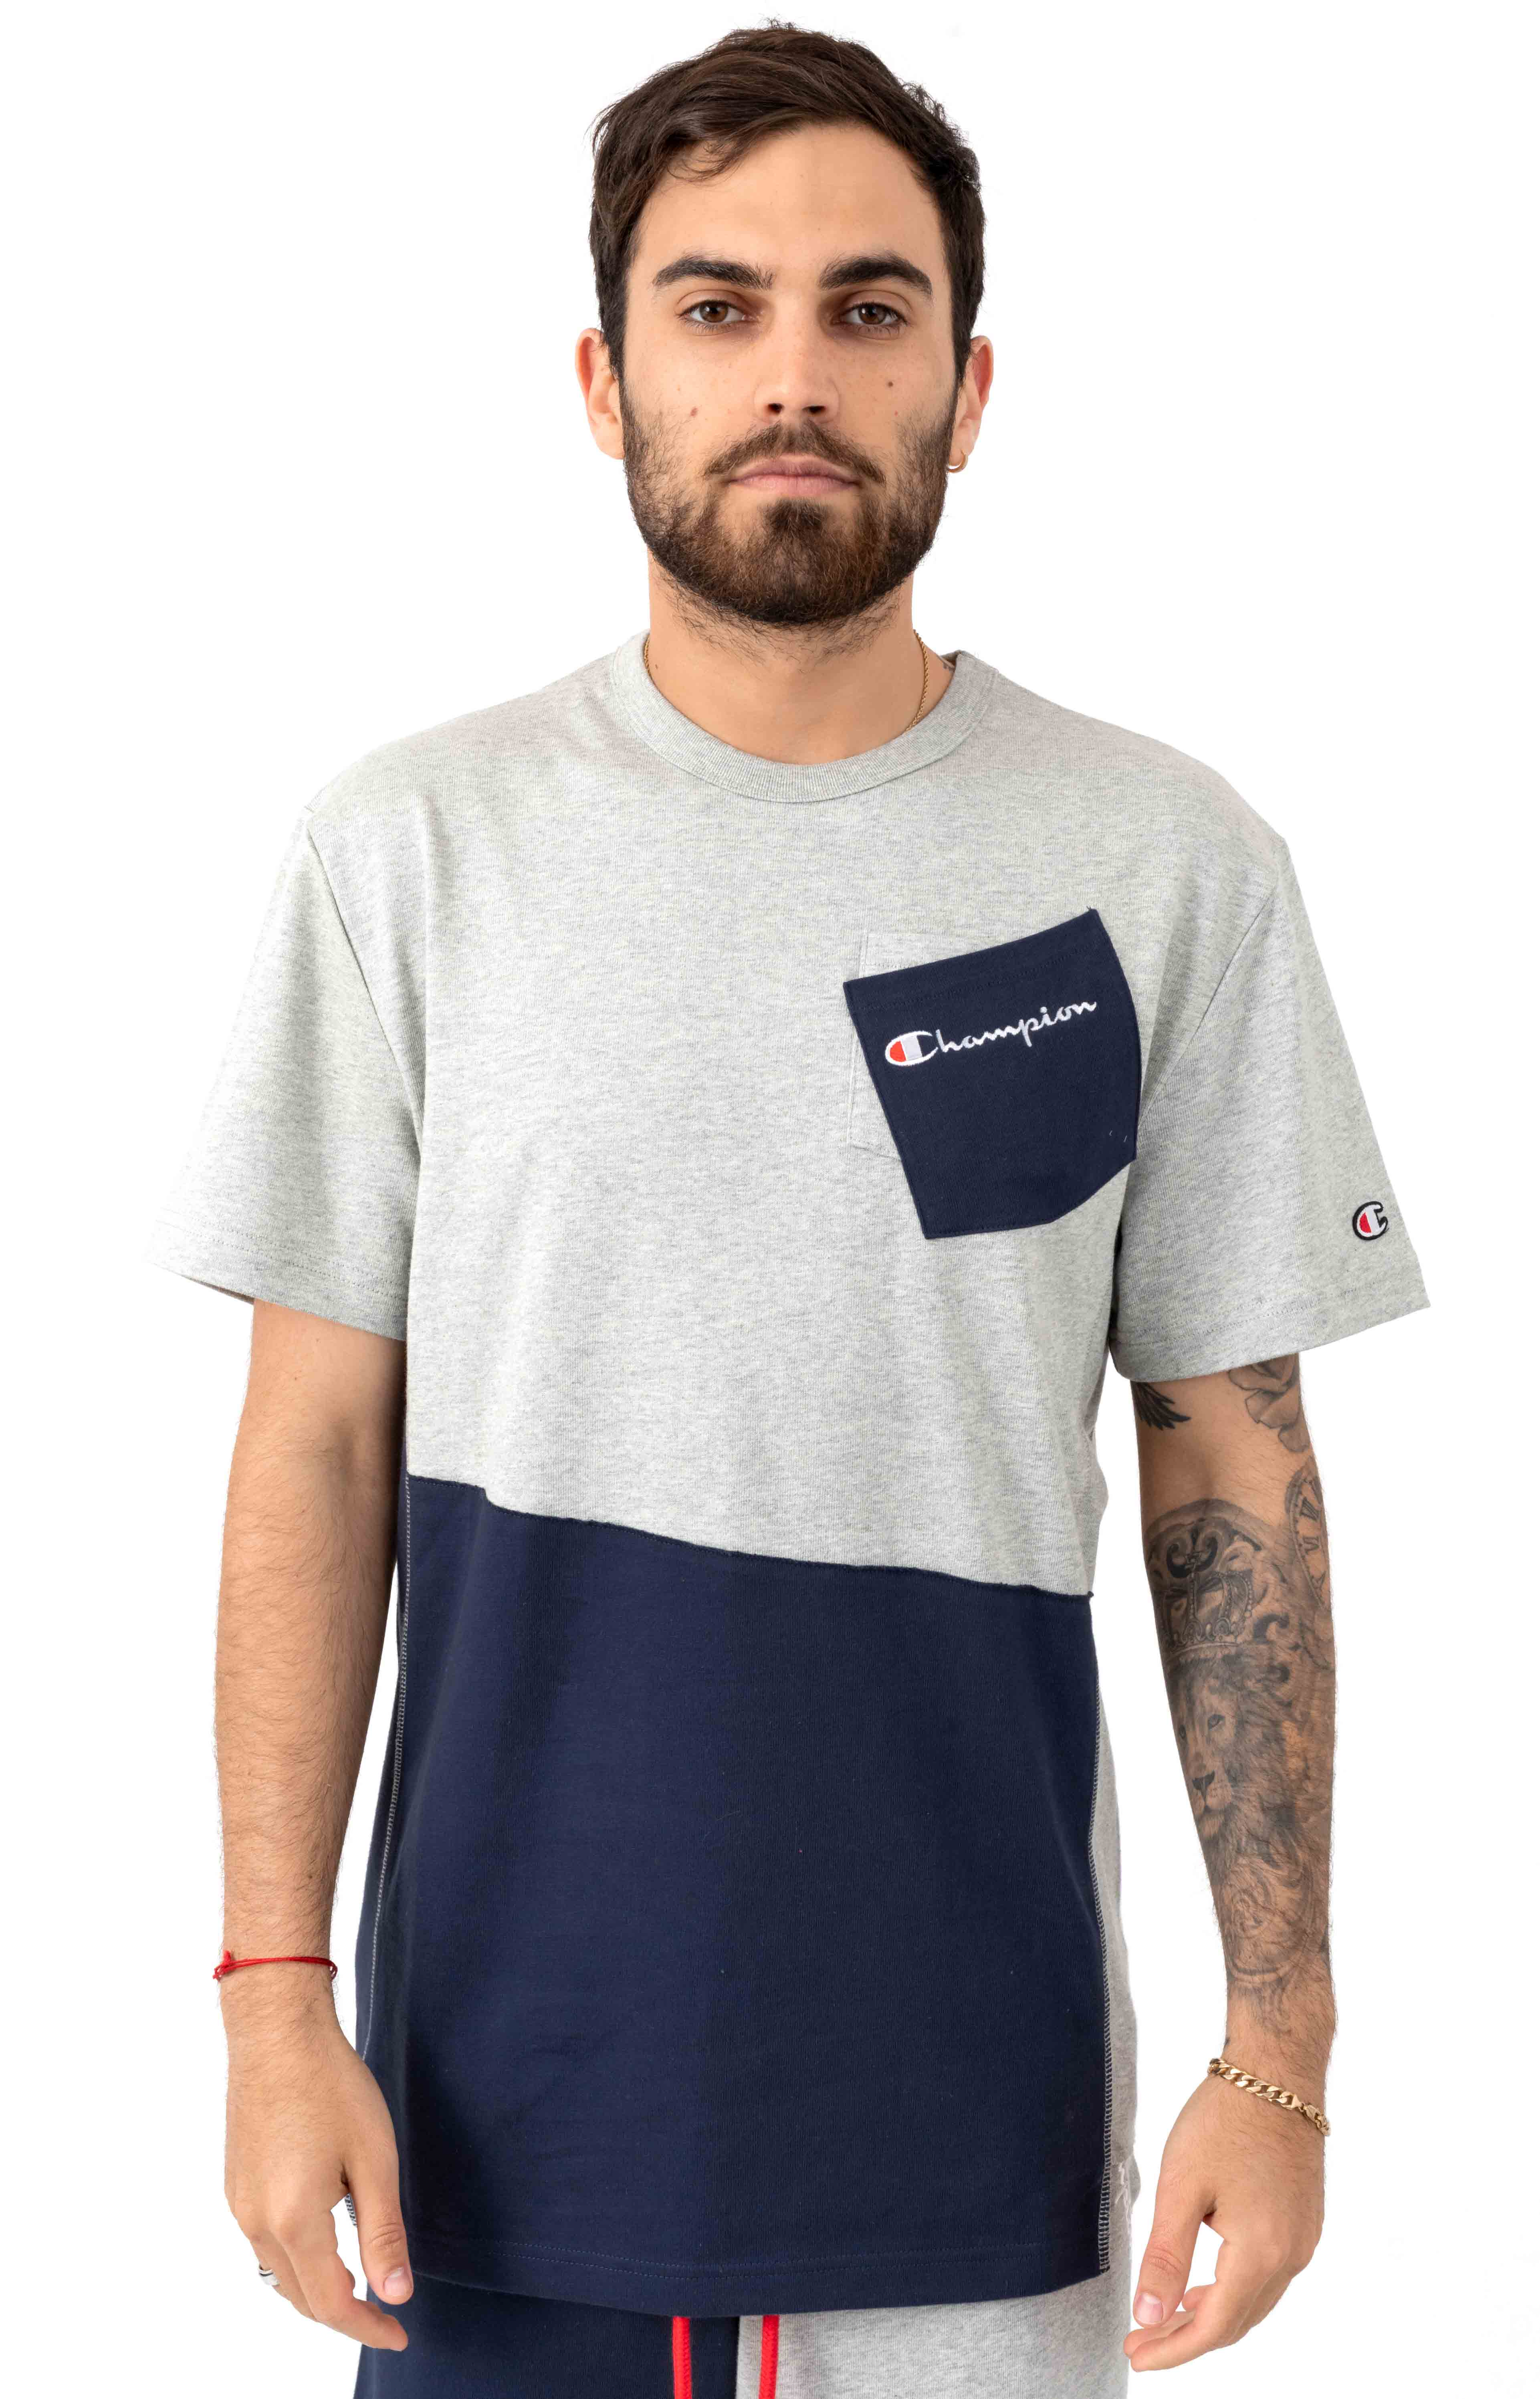 Heritage Shift T-Shirt - Oxford Grey/Imperial Indigo